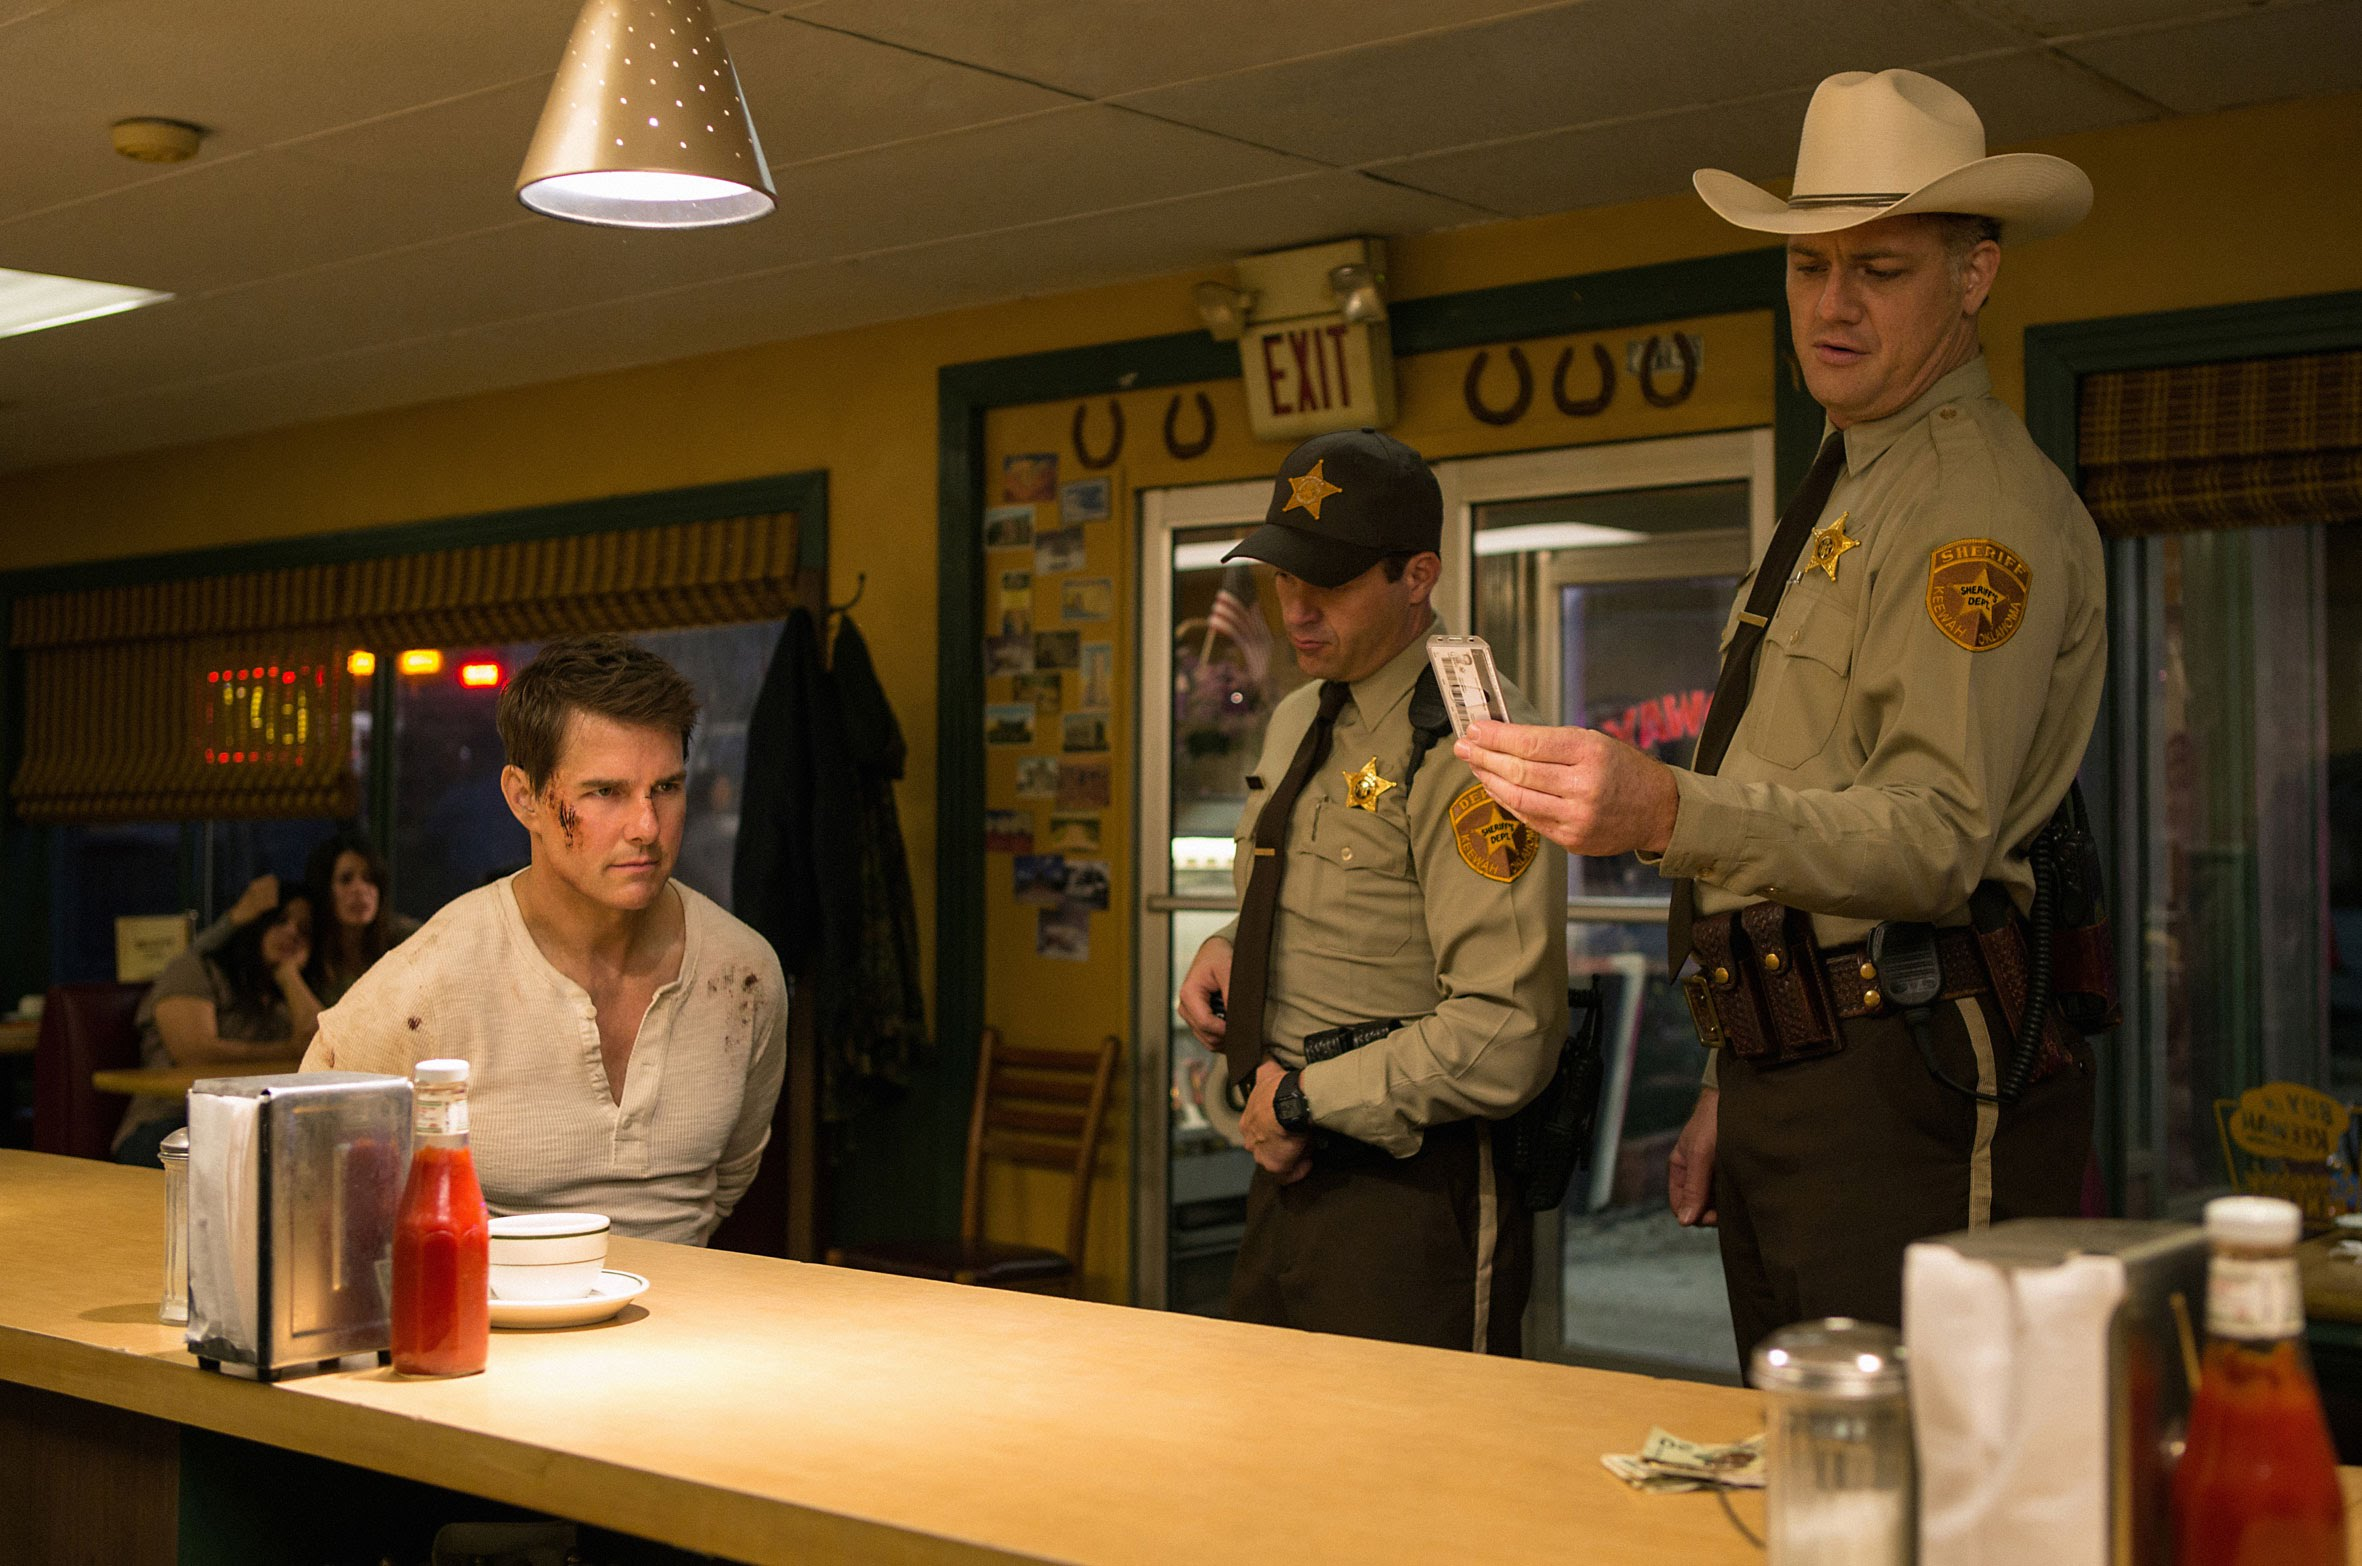 Tom Cruise returns as Jack Reacher in the sequel directed by Edward Zwick.